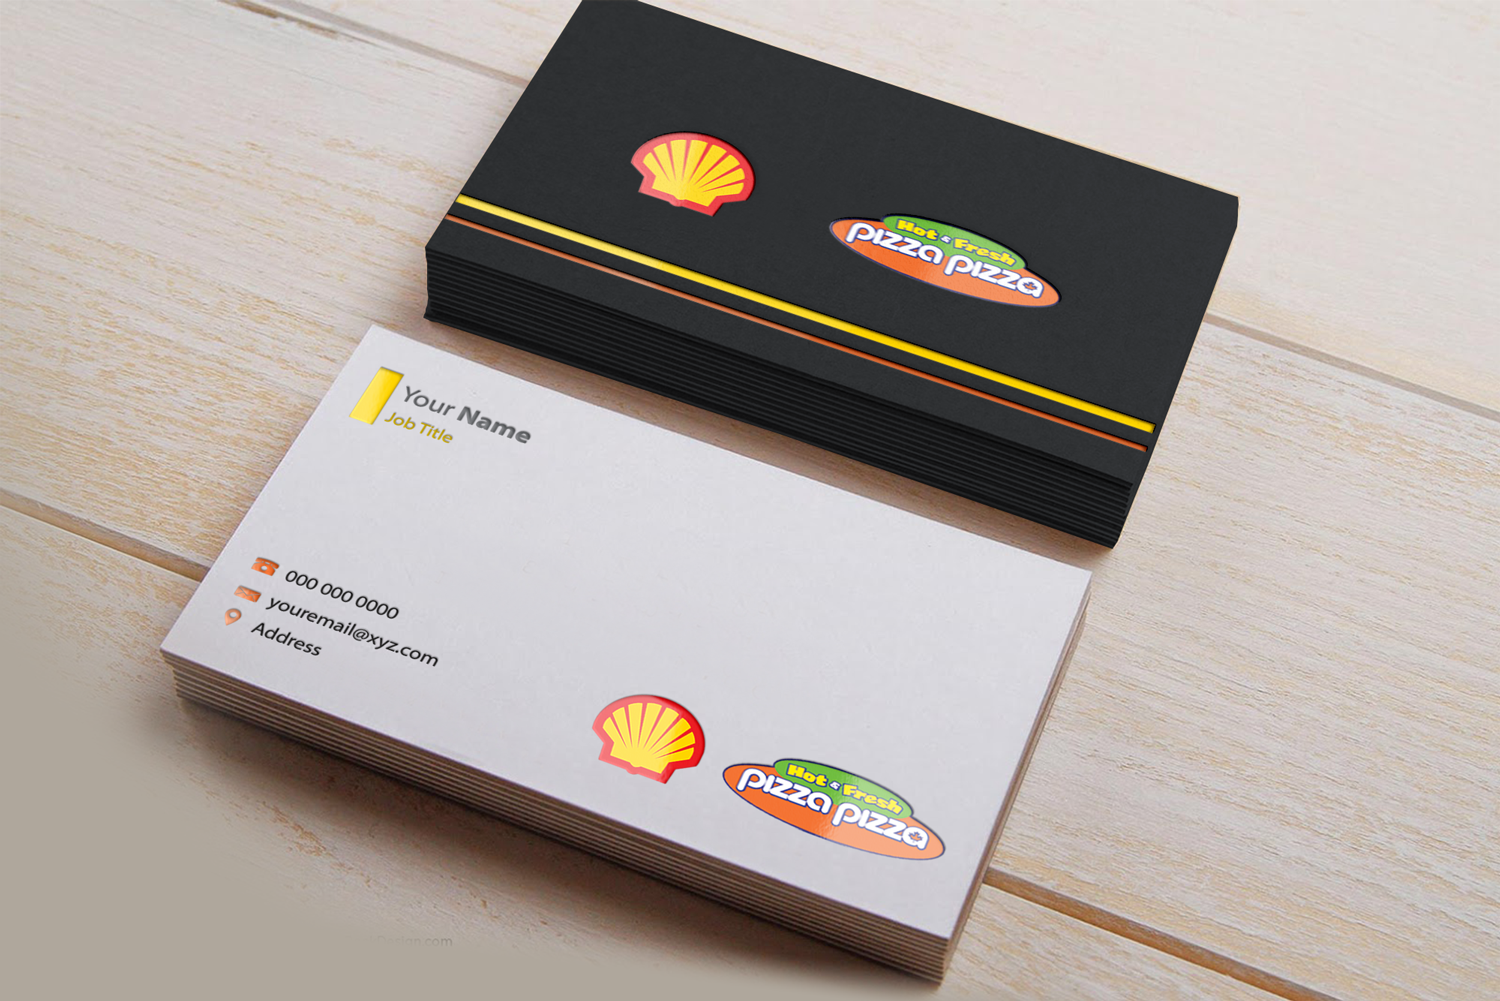 Image Result For Shell Gas Station Business Credit Card